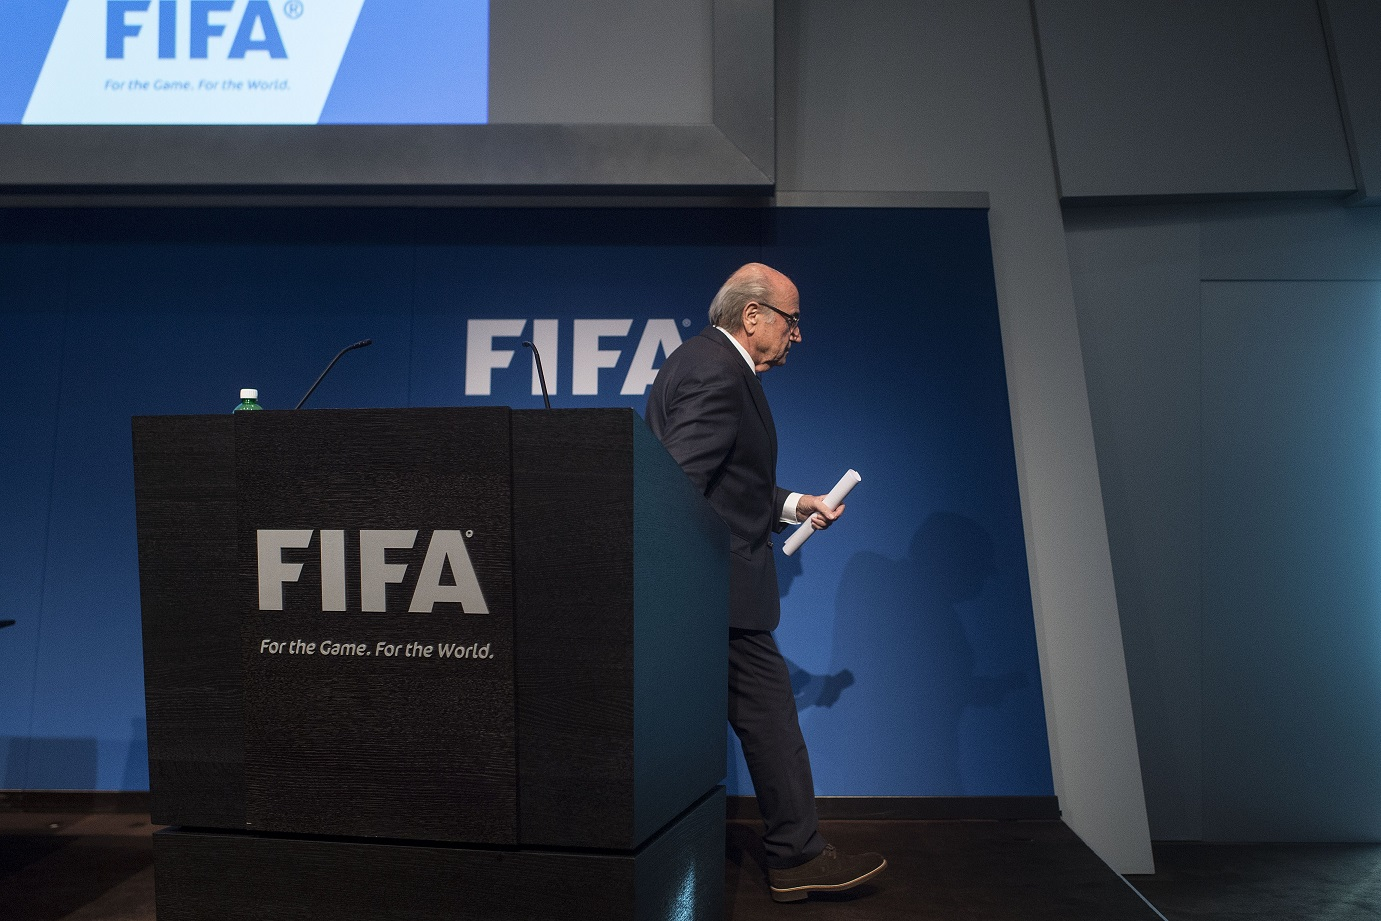 Sepp Blatter has resigned